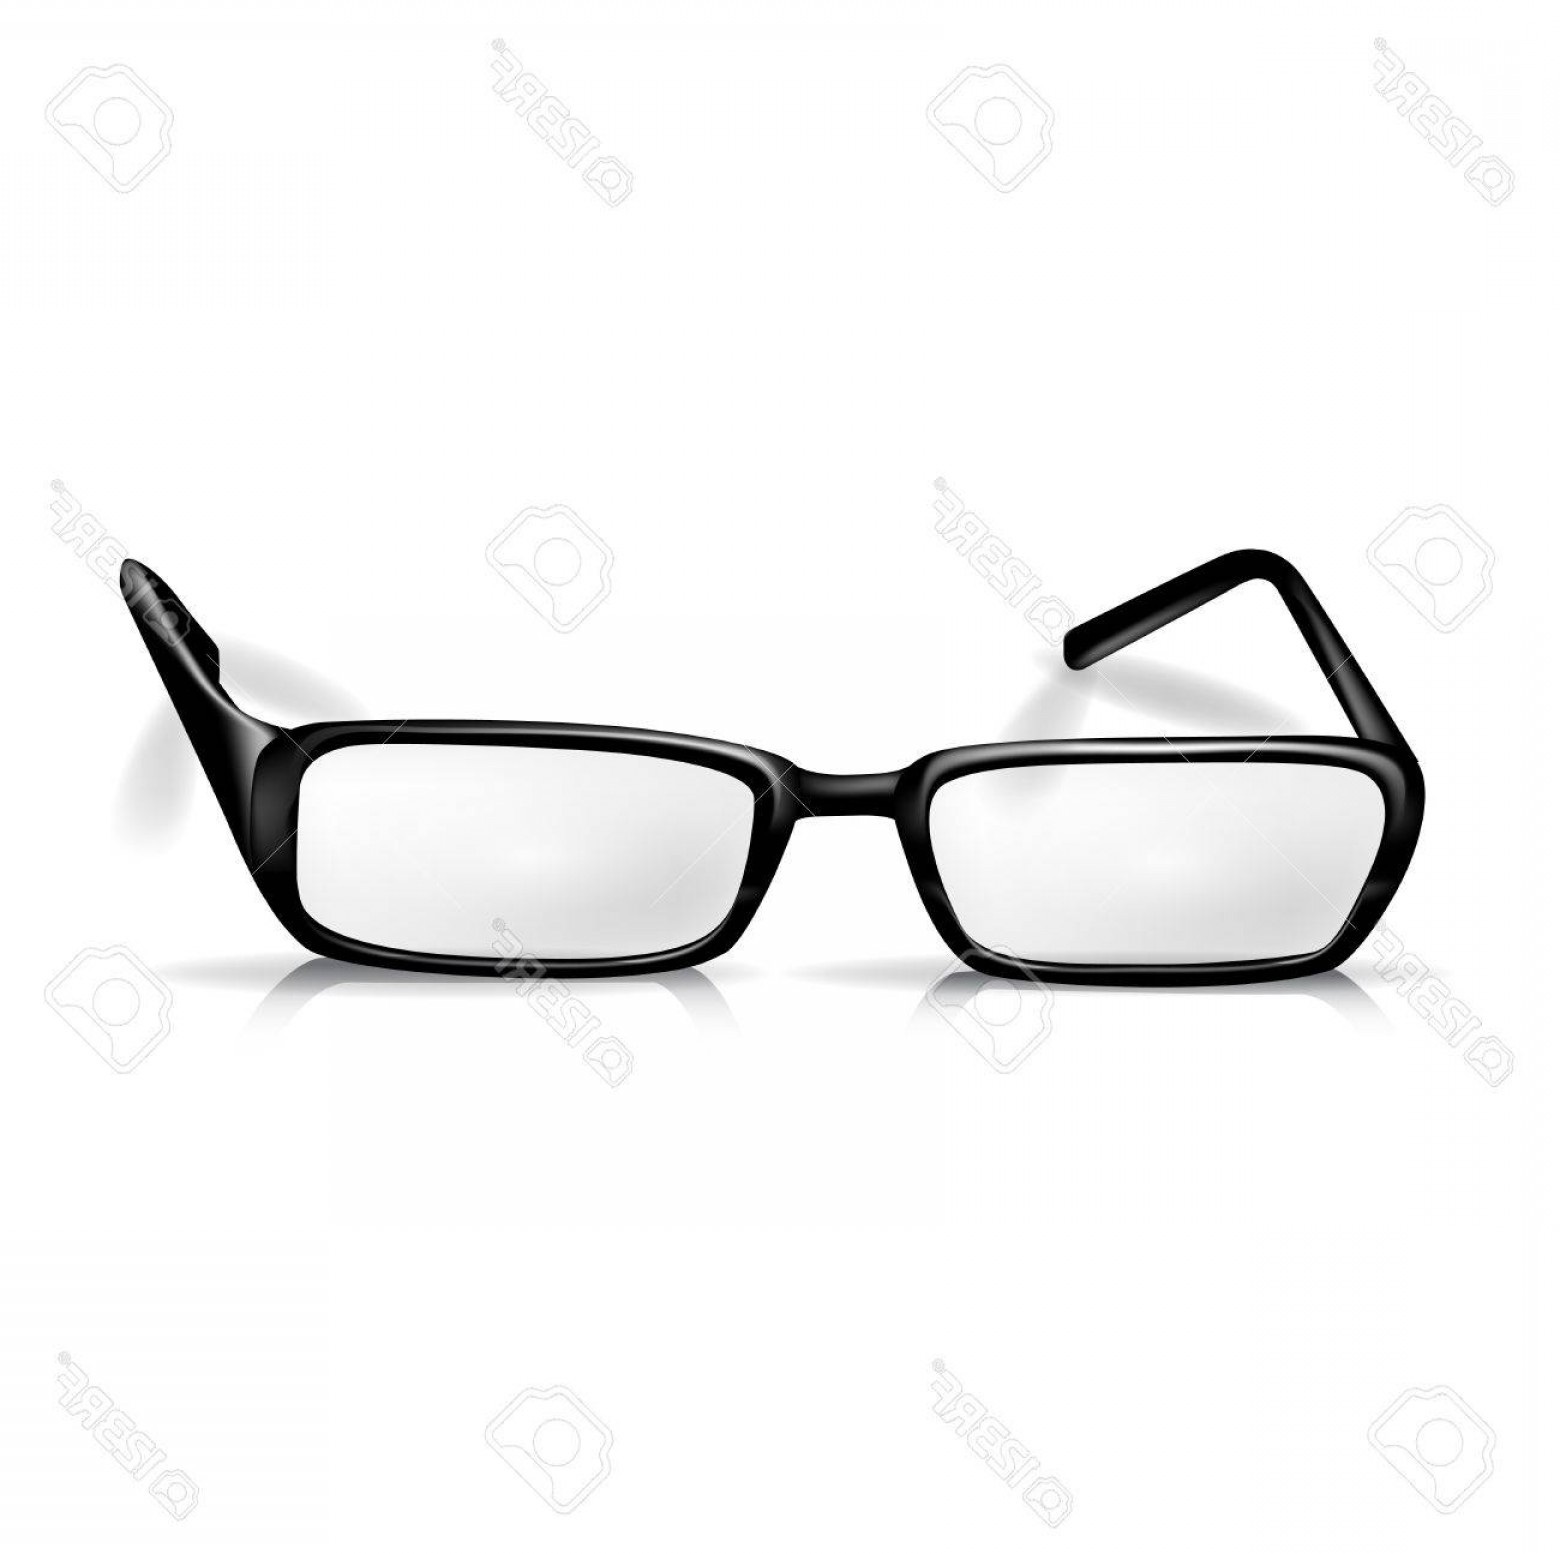 Reading Glasses For Men Vector: Photoblack Reading Glasses Isolated On White